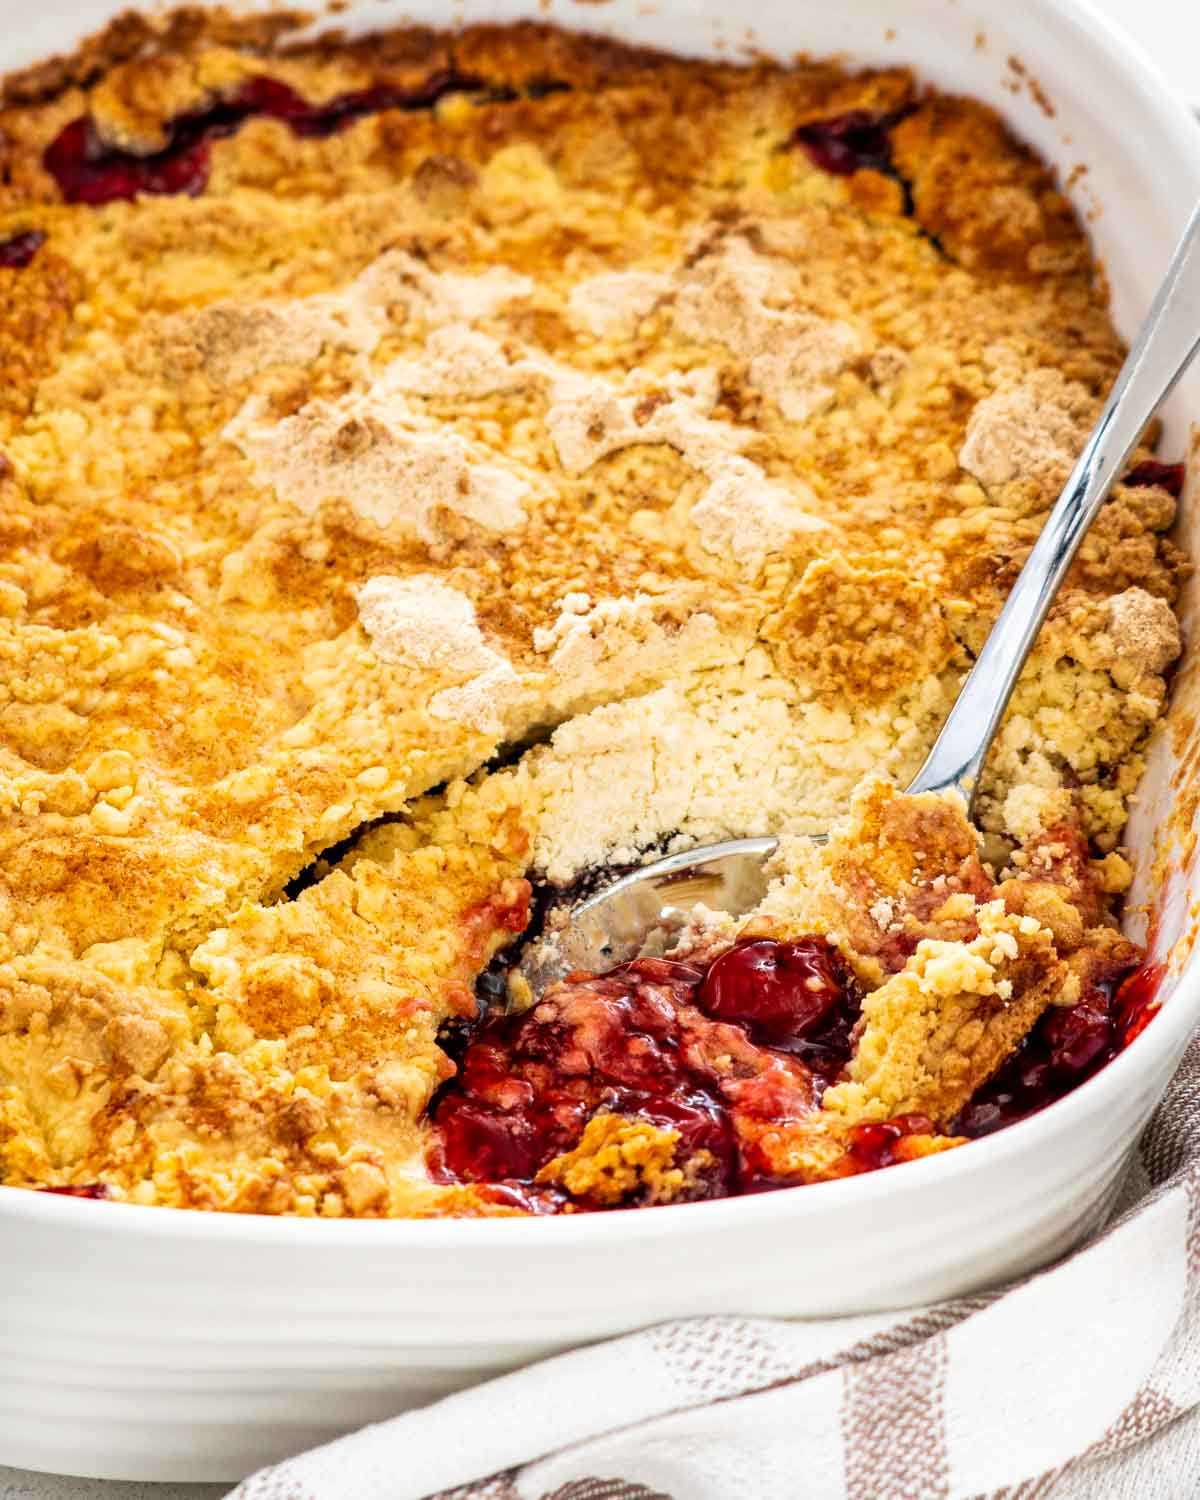 cherry dump cake in a baking dish with a serving spoon.